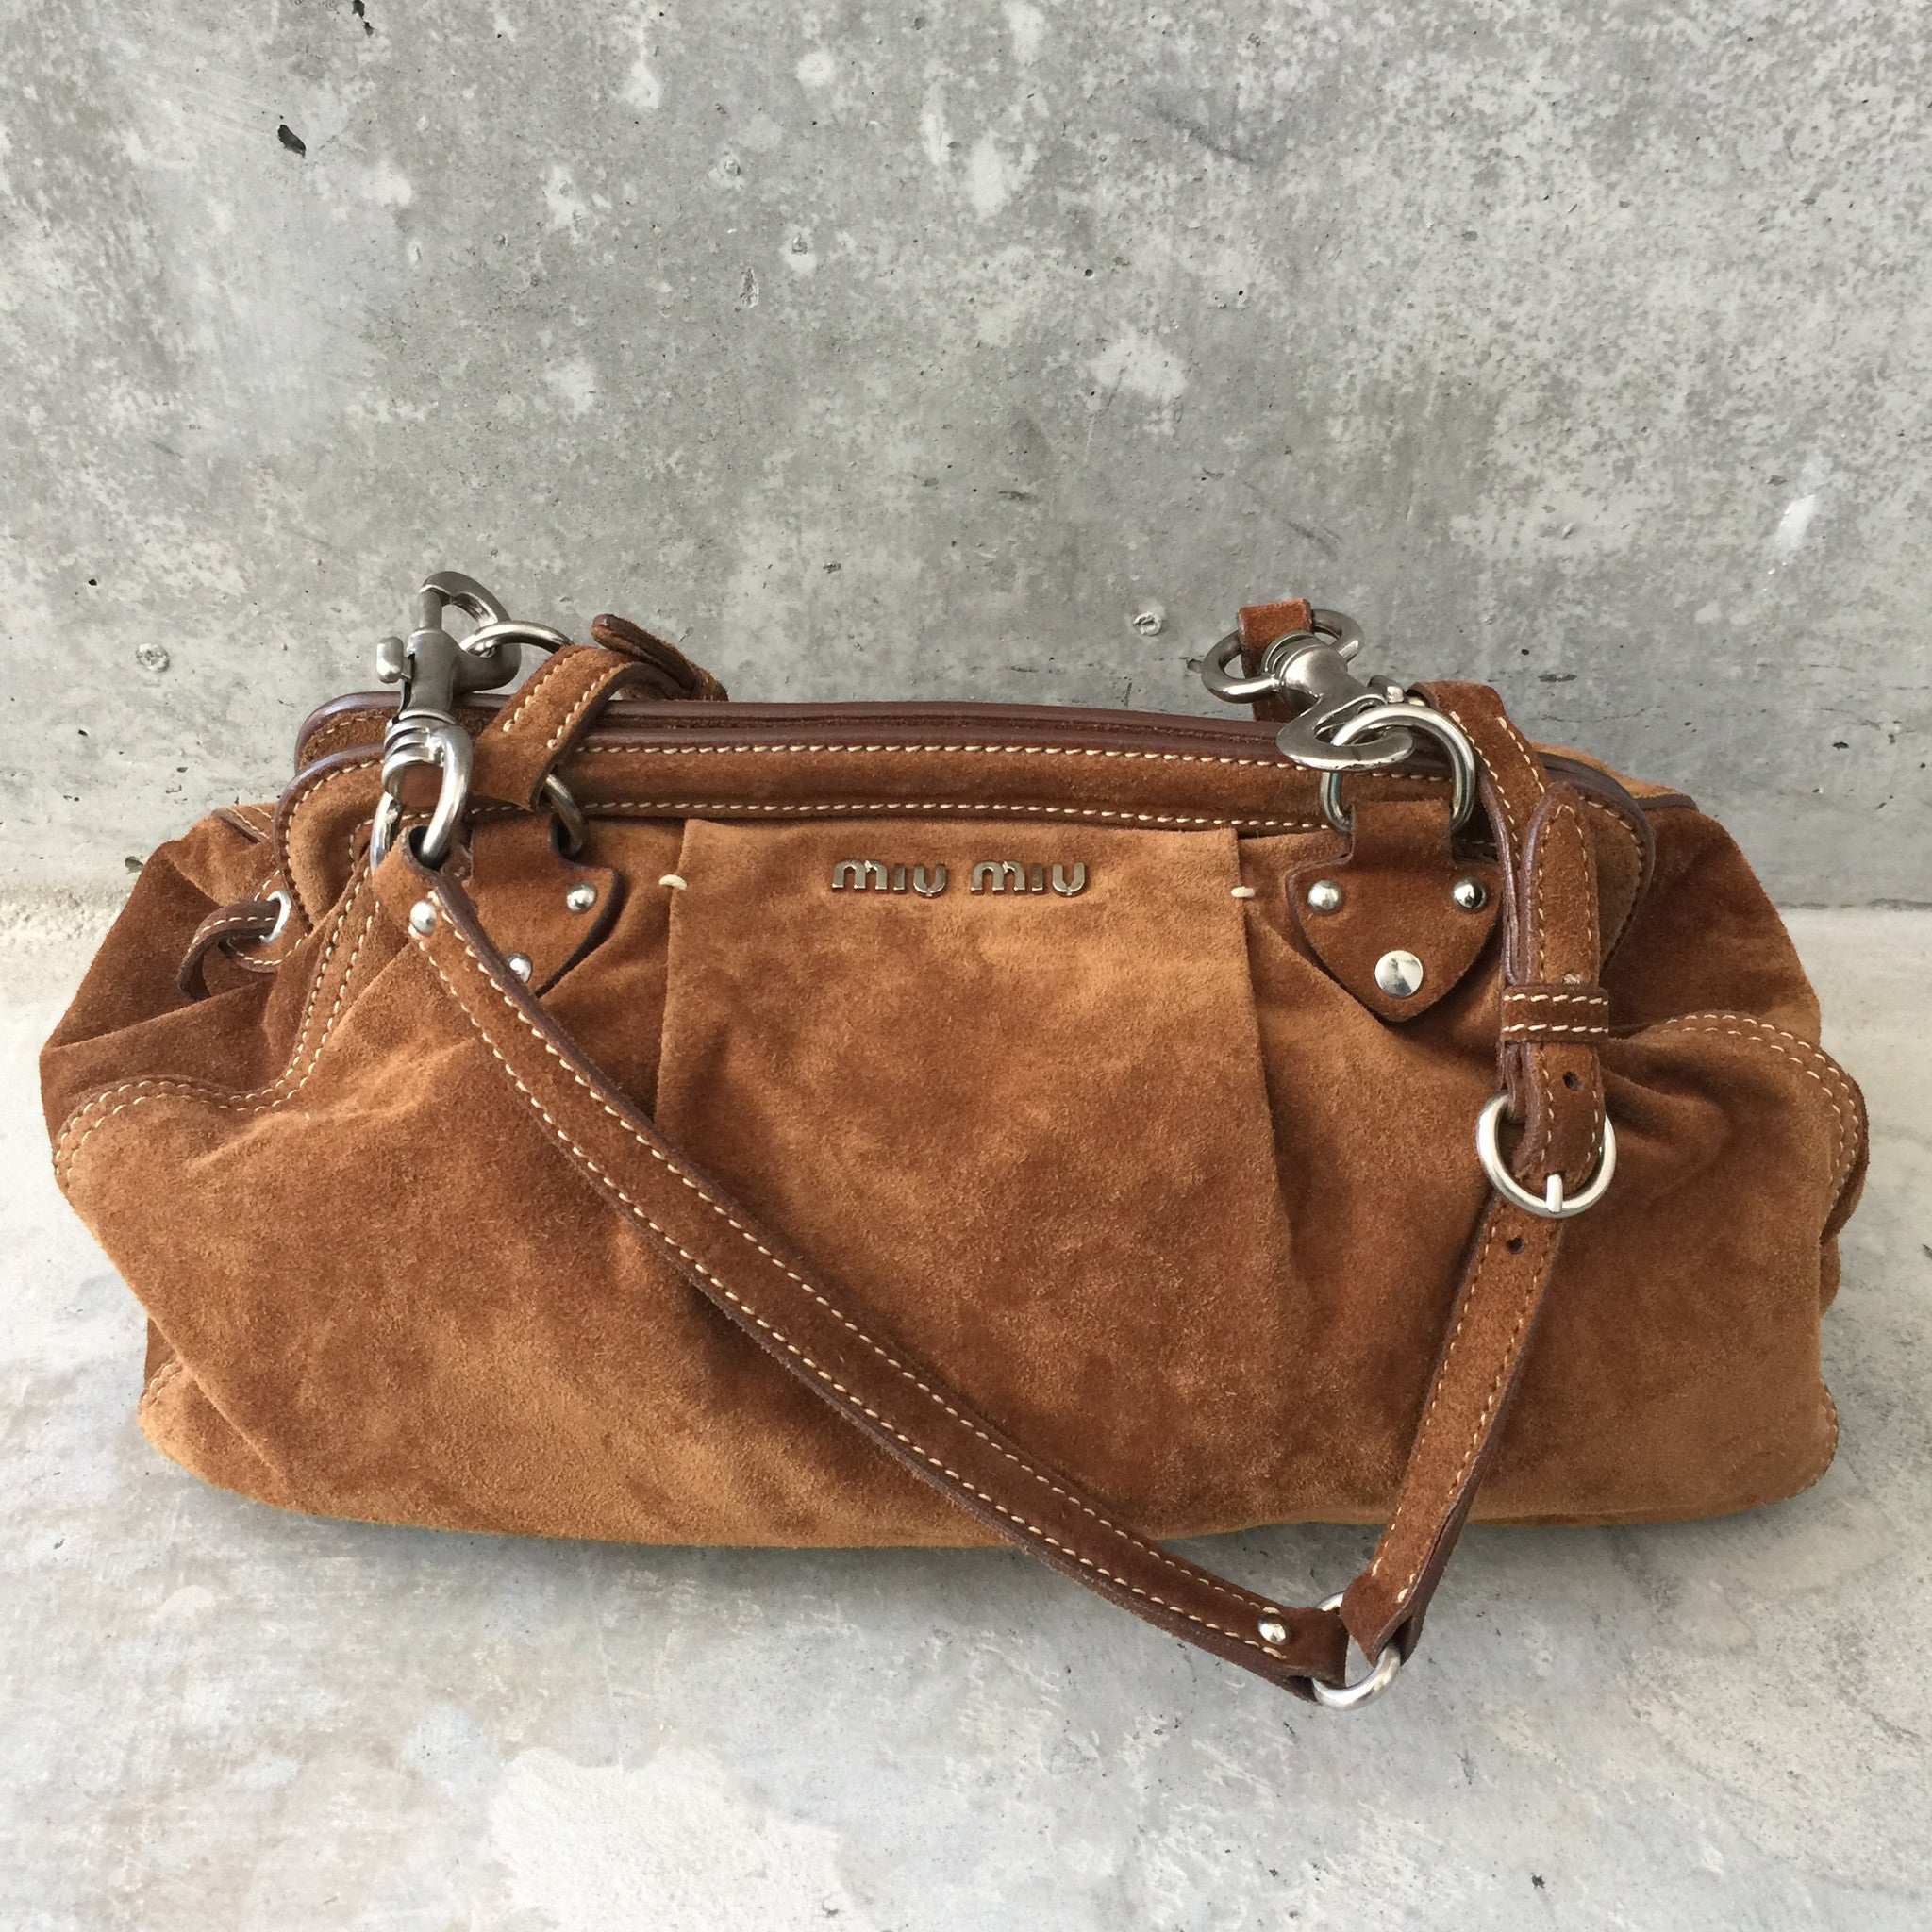 Authentic MIU MIU Suede Bag